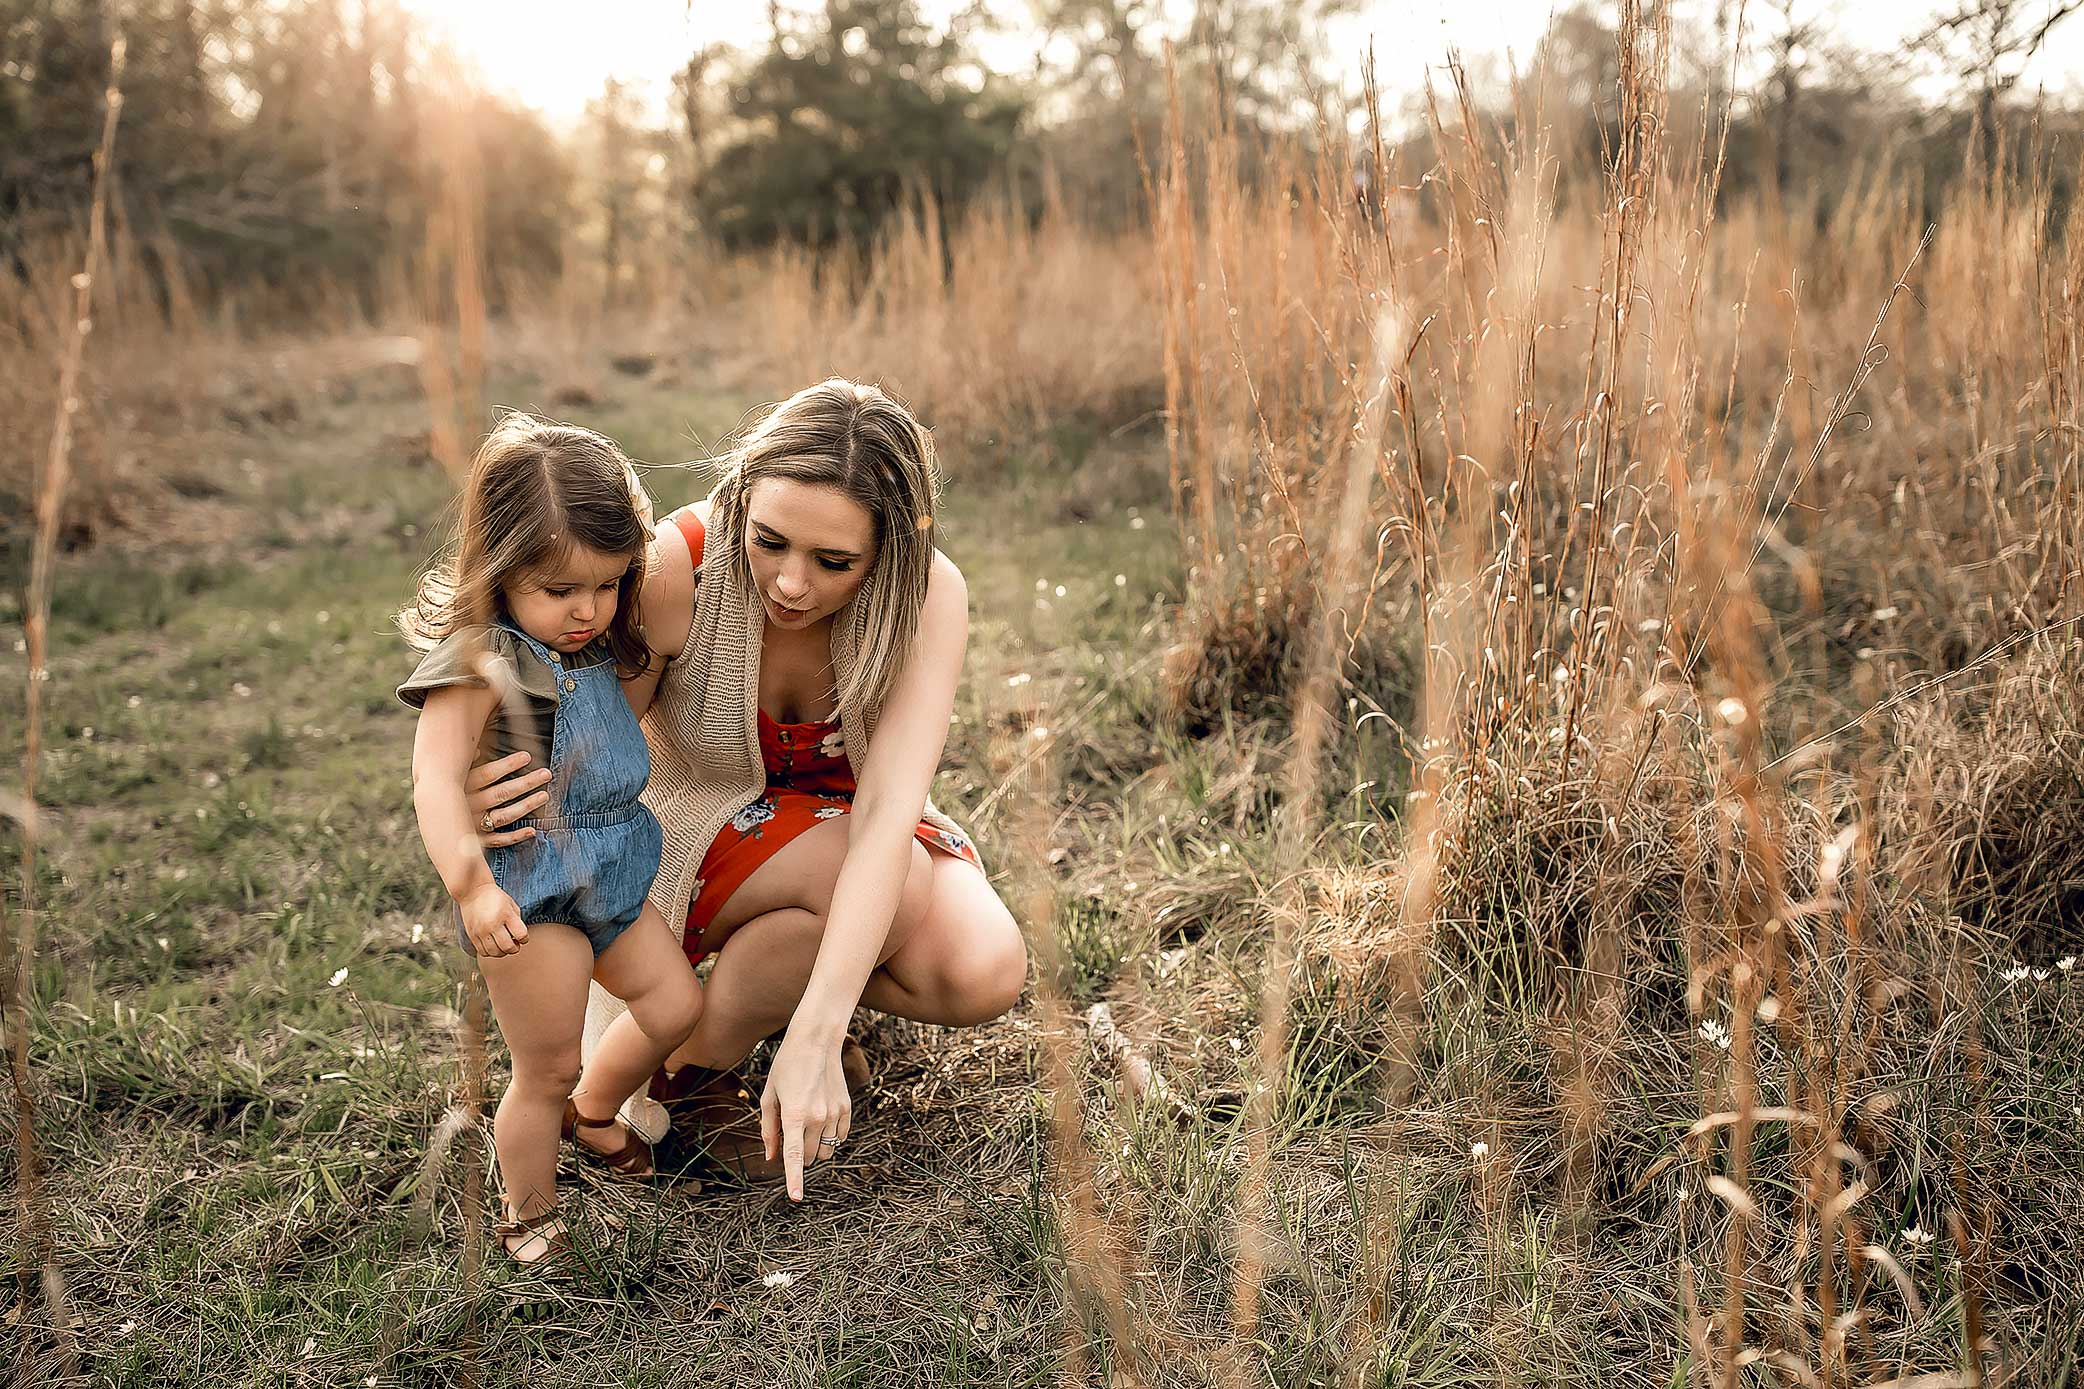 shelby-schiller-photography-sunset-family-pictures-spring-2019-14.jpg